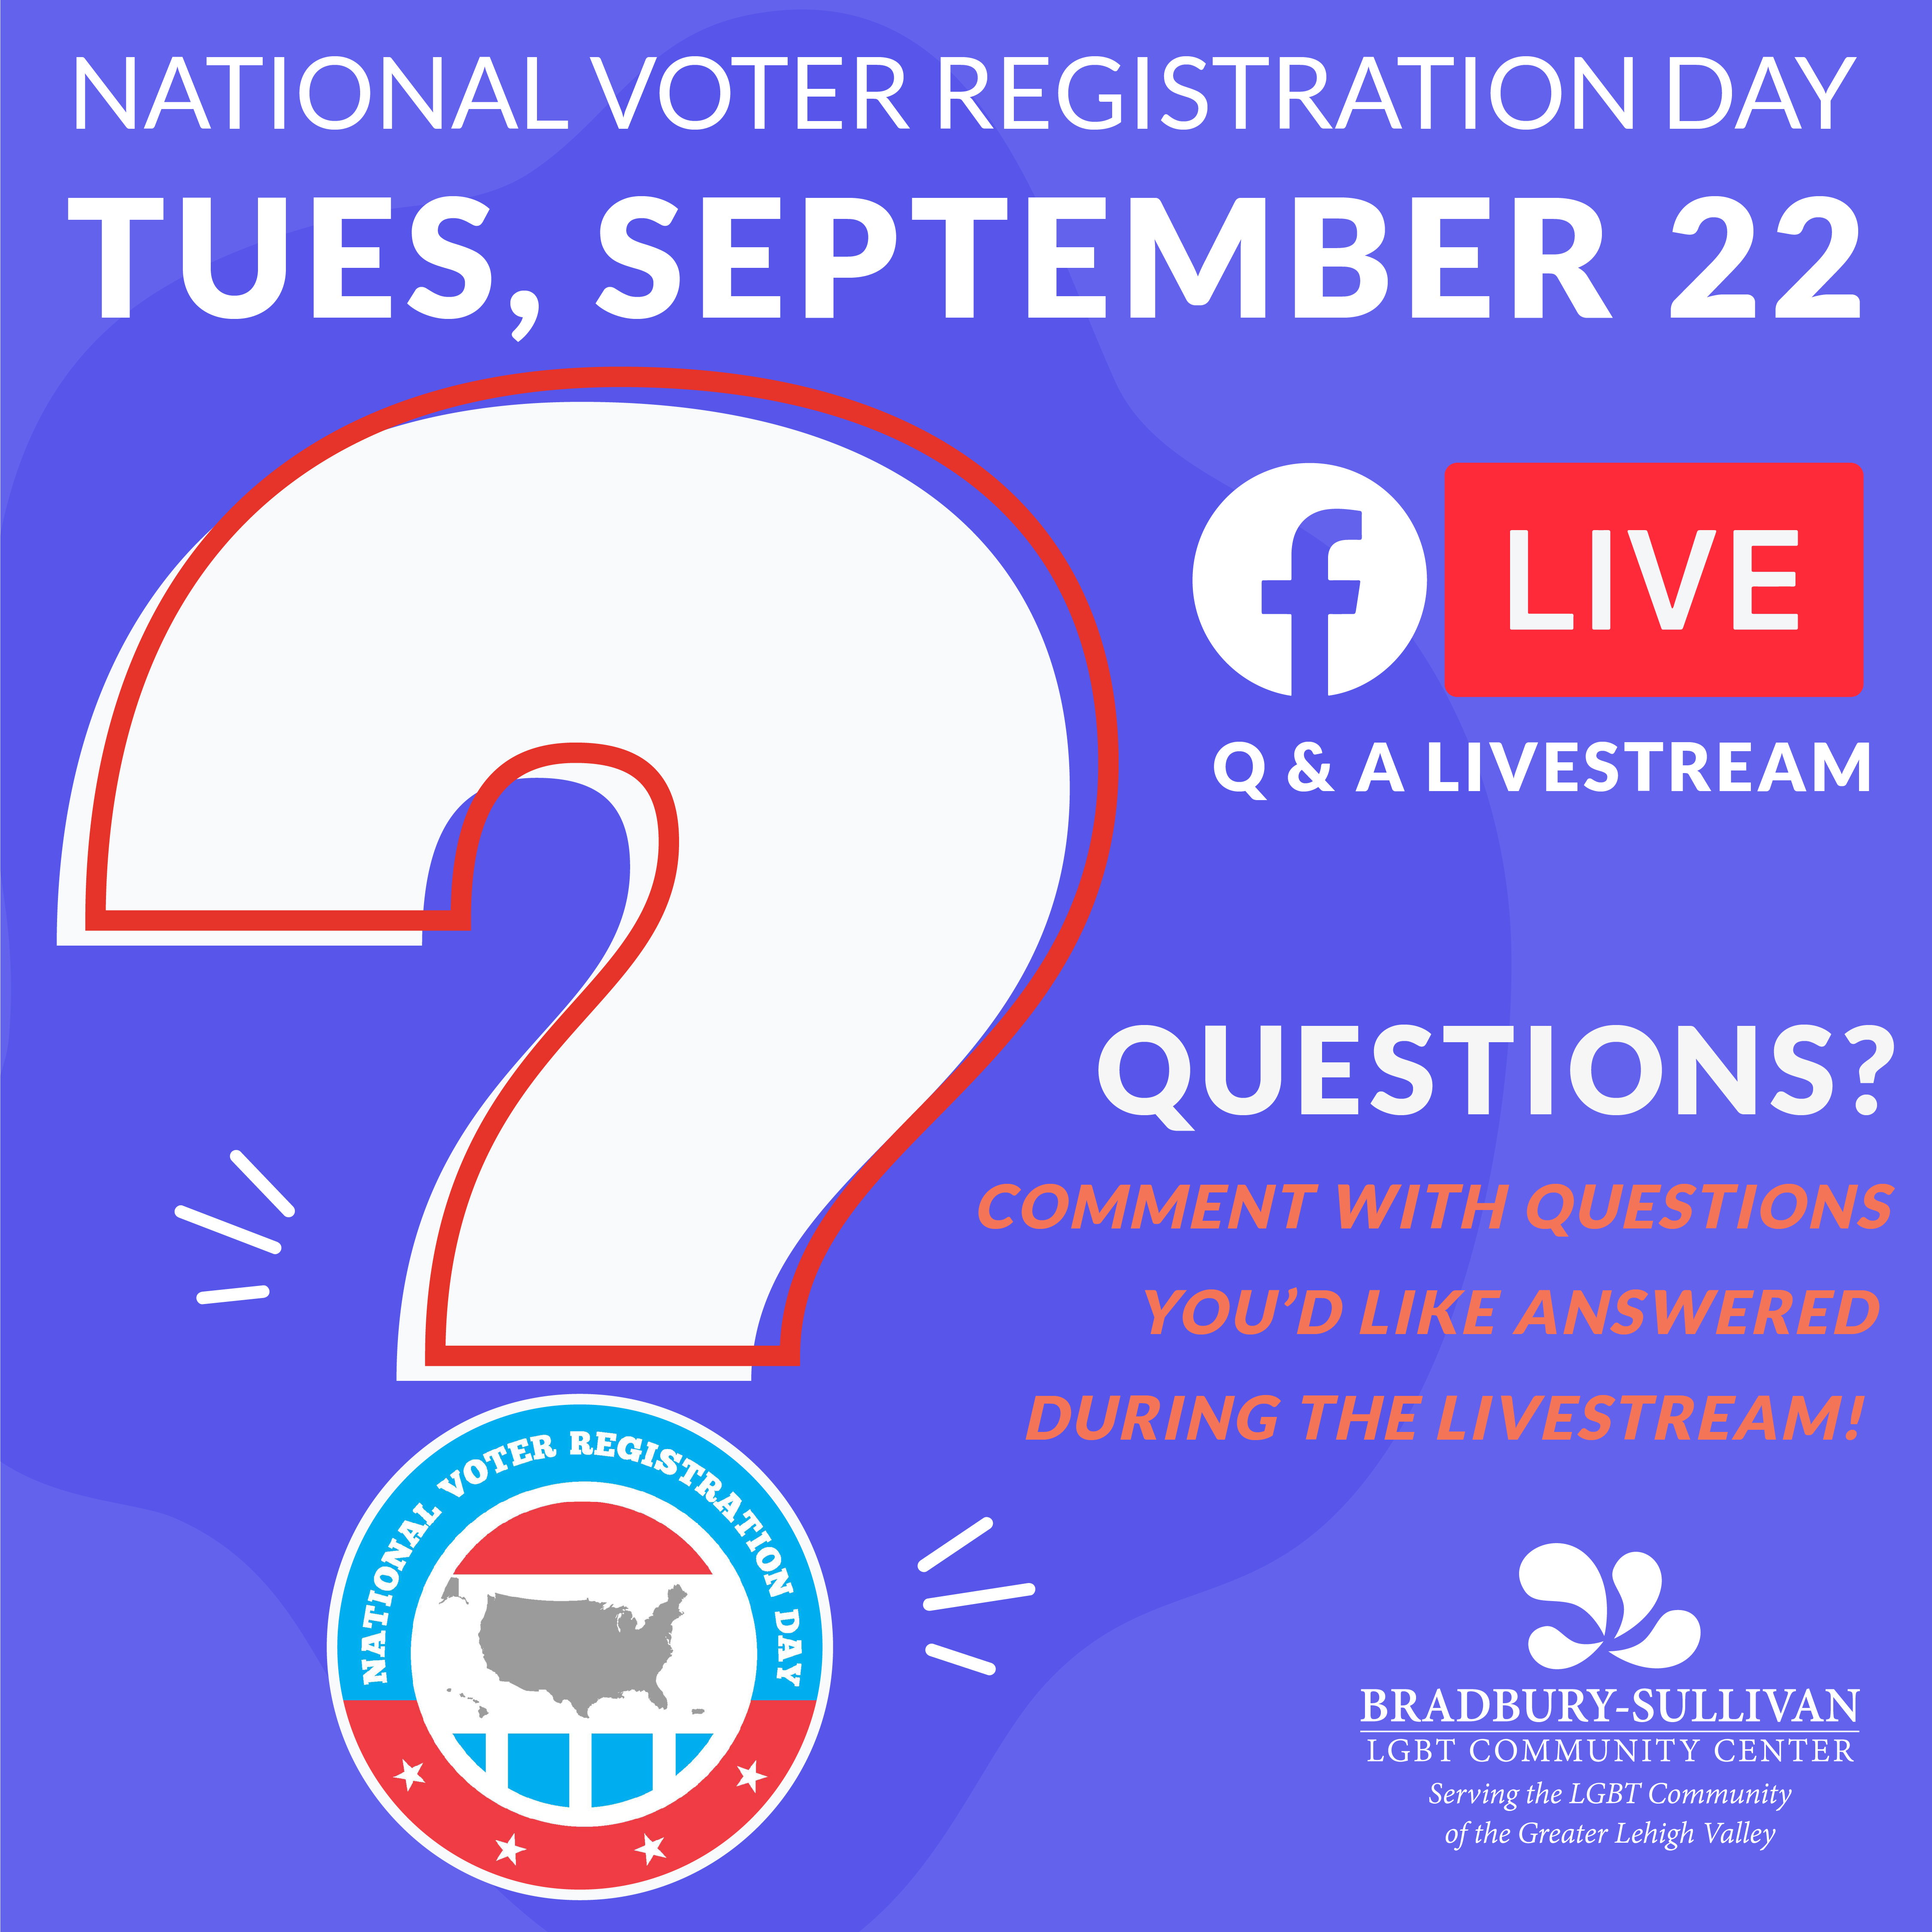 A graphic sharing information about Nation Voter Registration Day on Tuesday, September 22 at the top, a question mark and the National Voter Registration Day logo in the lower left corner, and an invitation  to ask questions in the lower right corner.